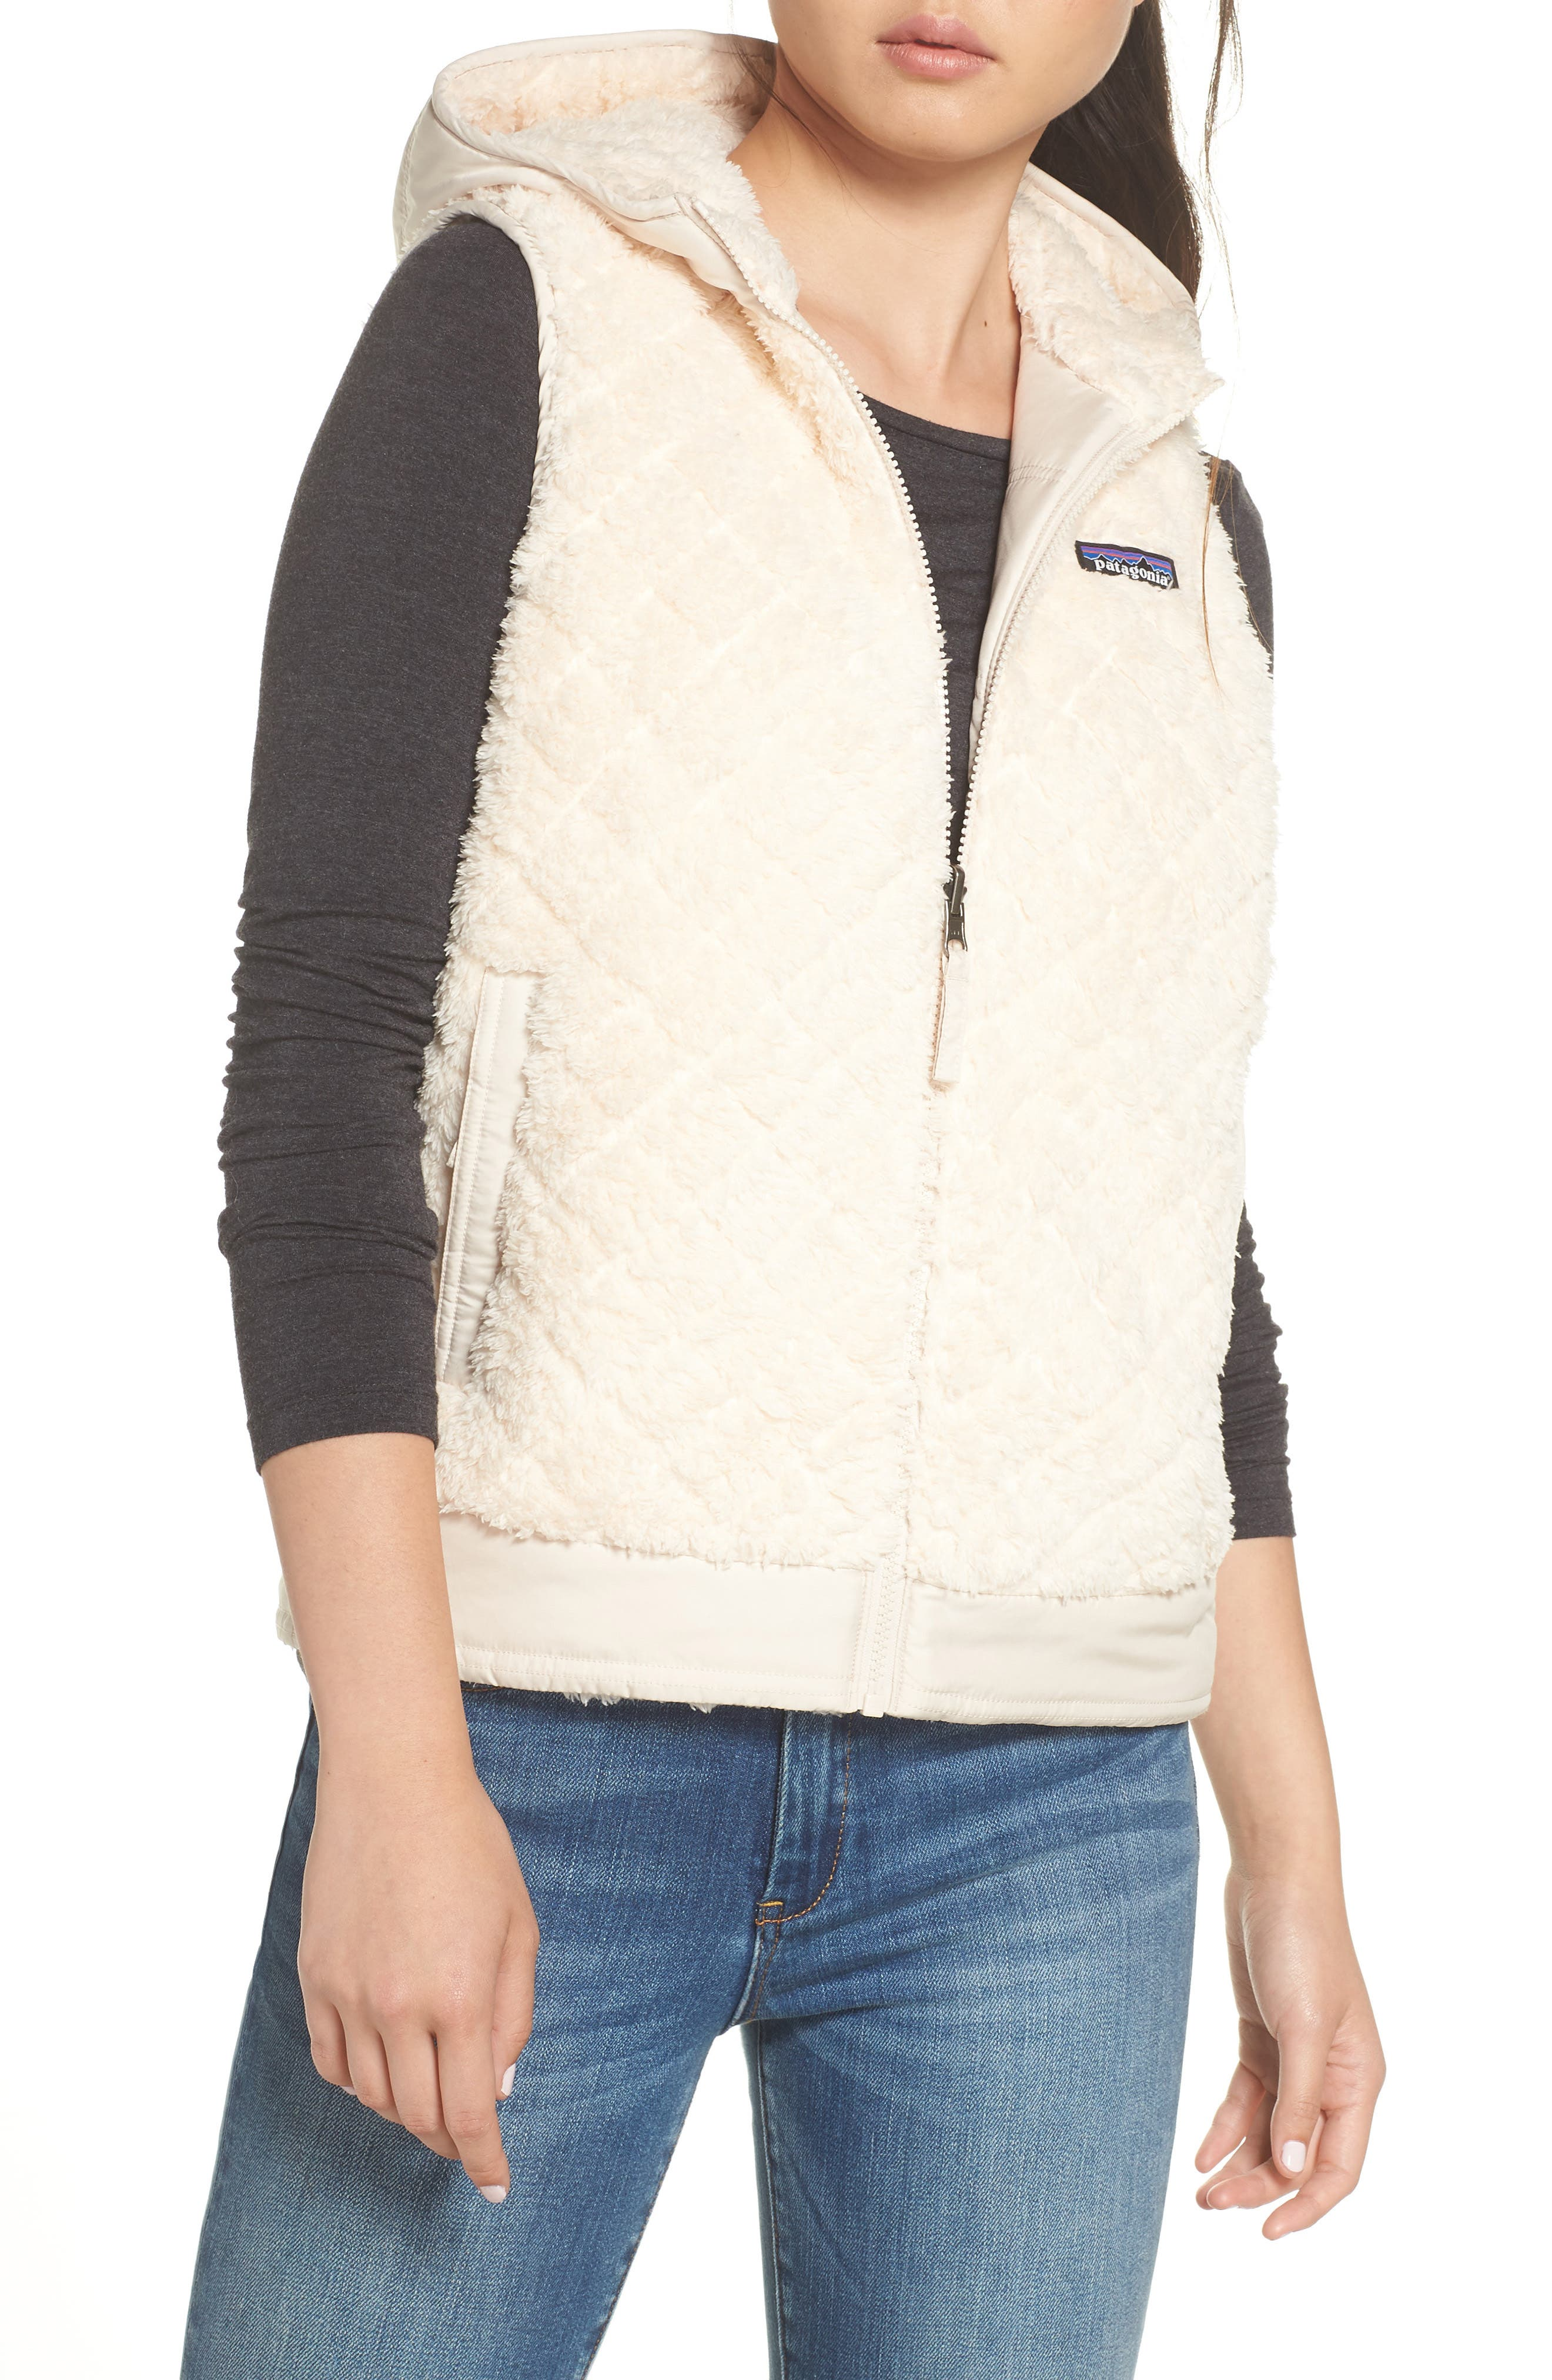 PATAGONIA, Los Gatos Reversible Vest, Main thumbnail 1, color, 251